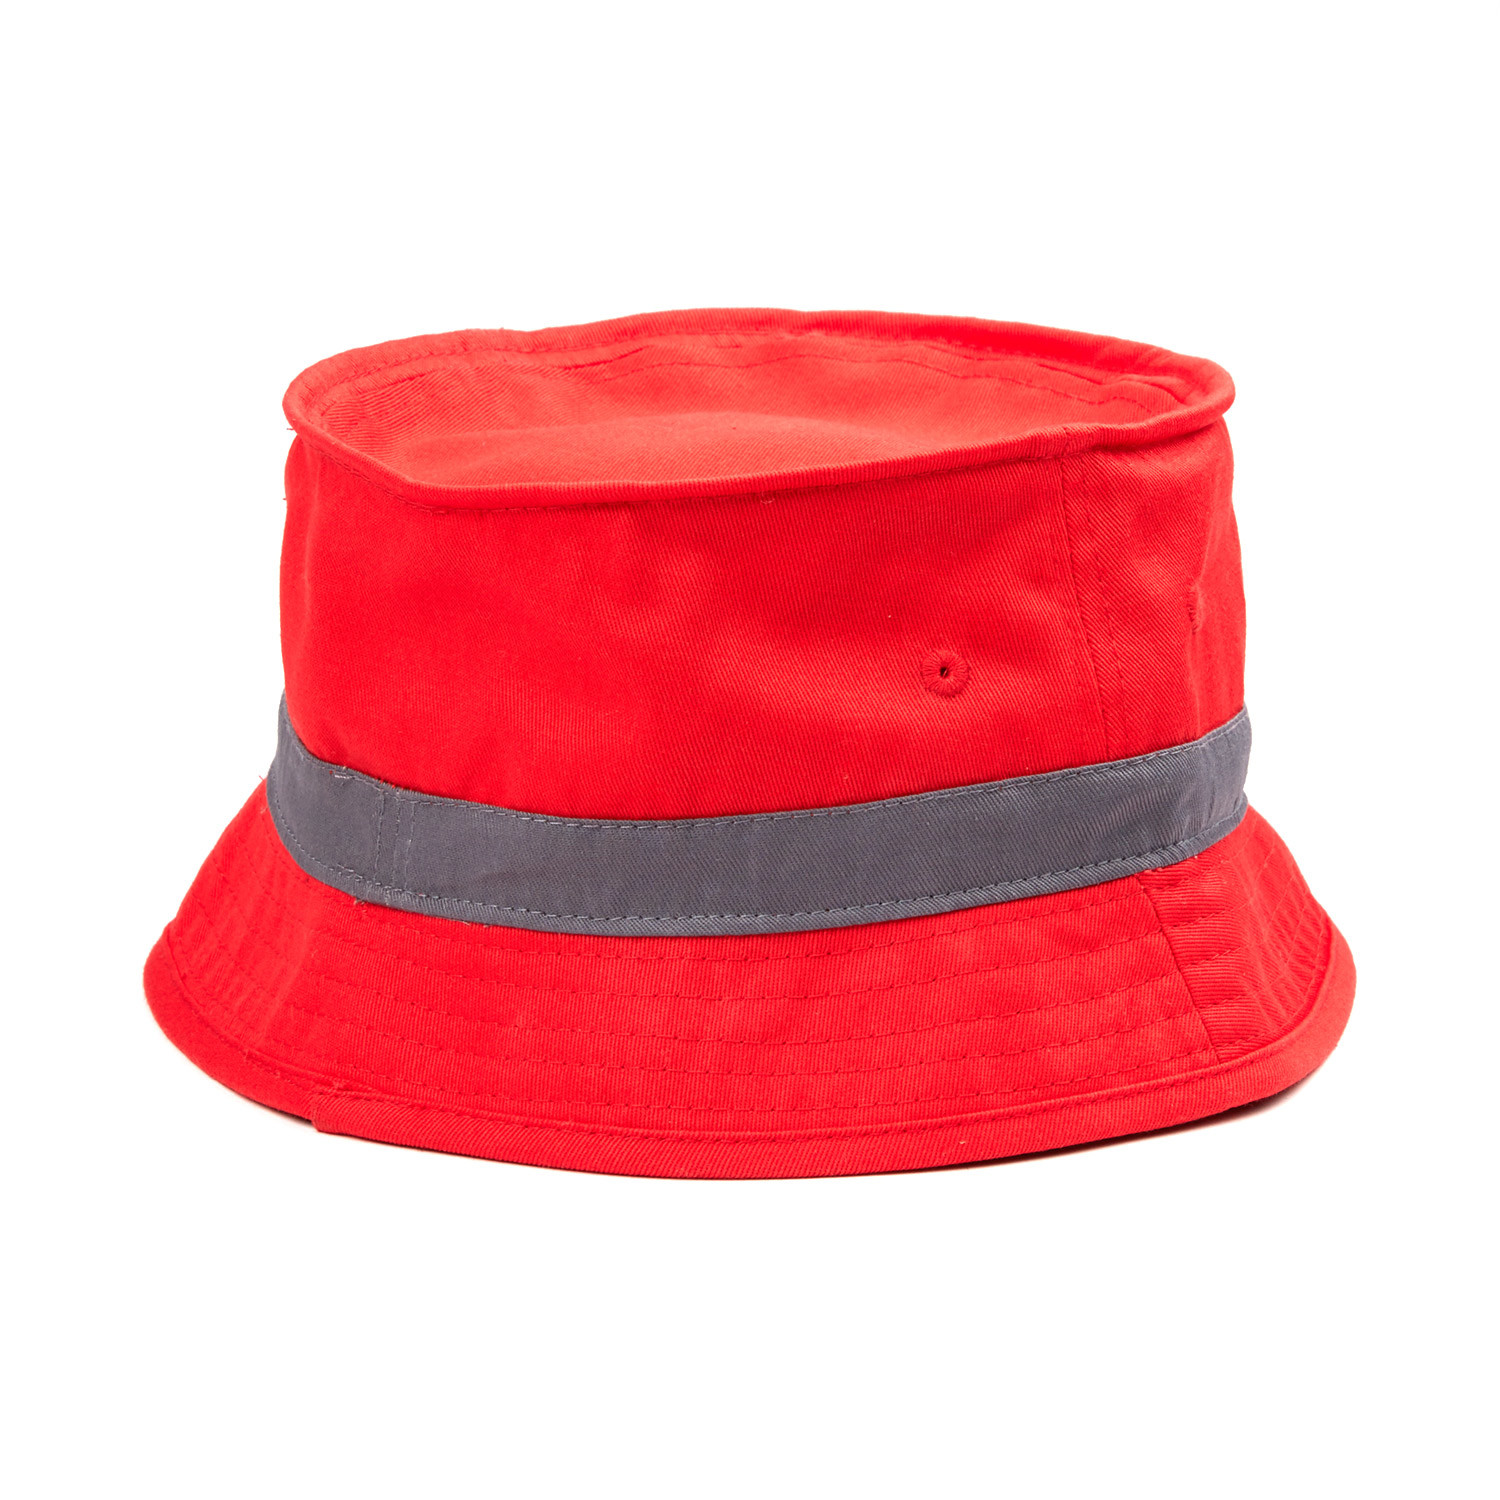 Faux Leather Hip Hop Plain Solid Color Bucket Hat - Fedora ...  |Red Bucket Hat